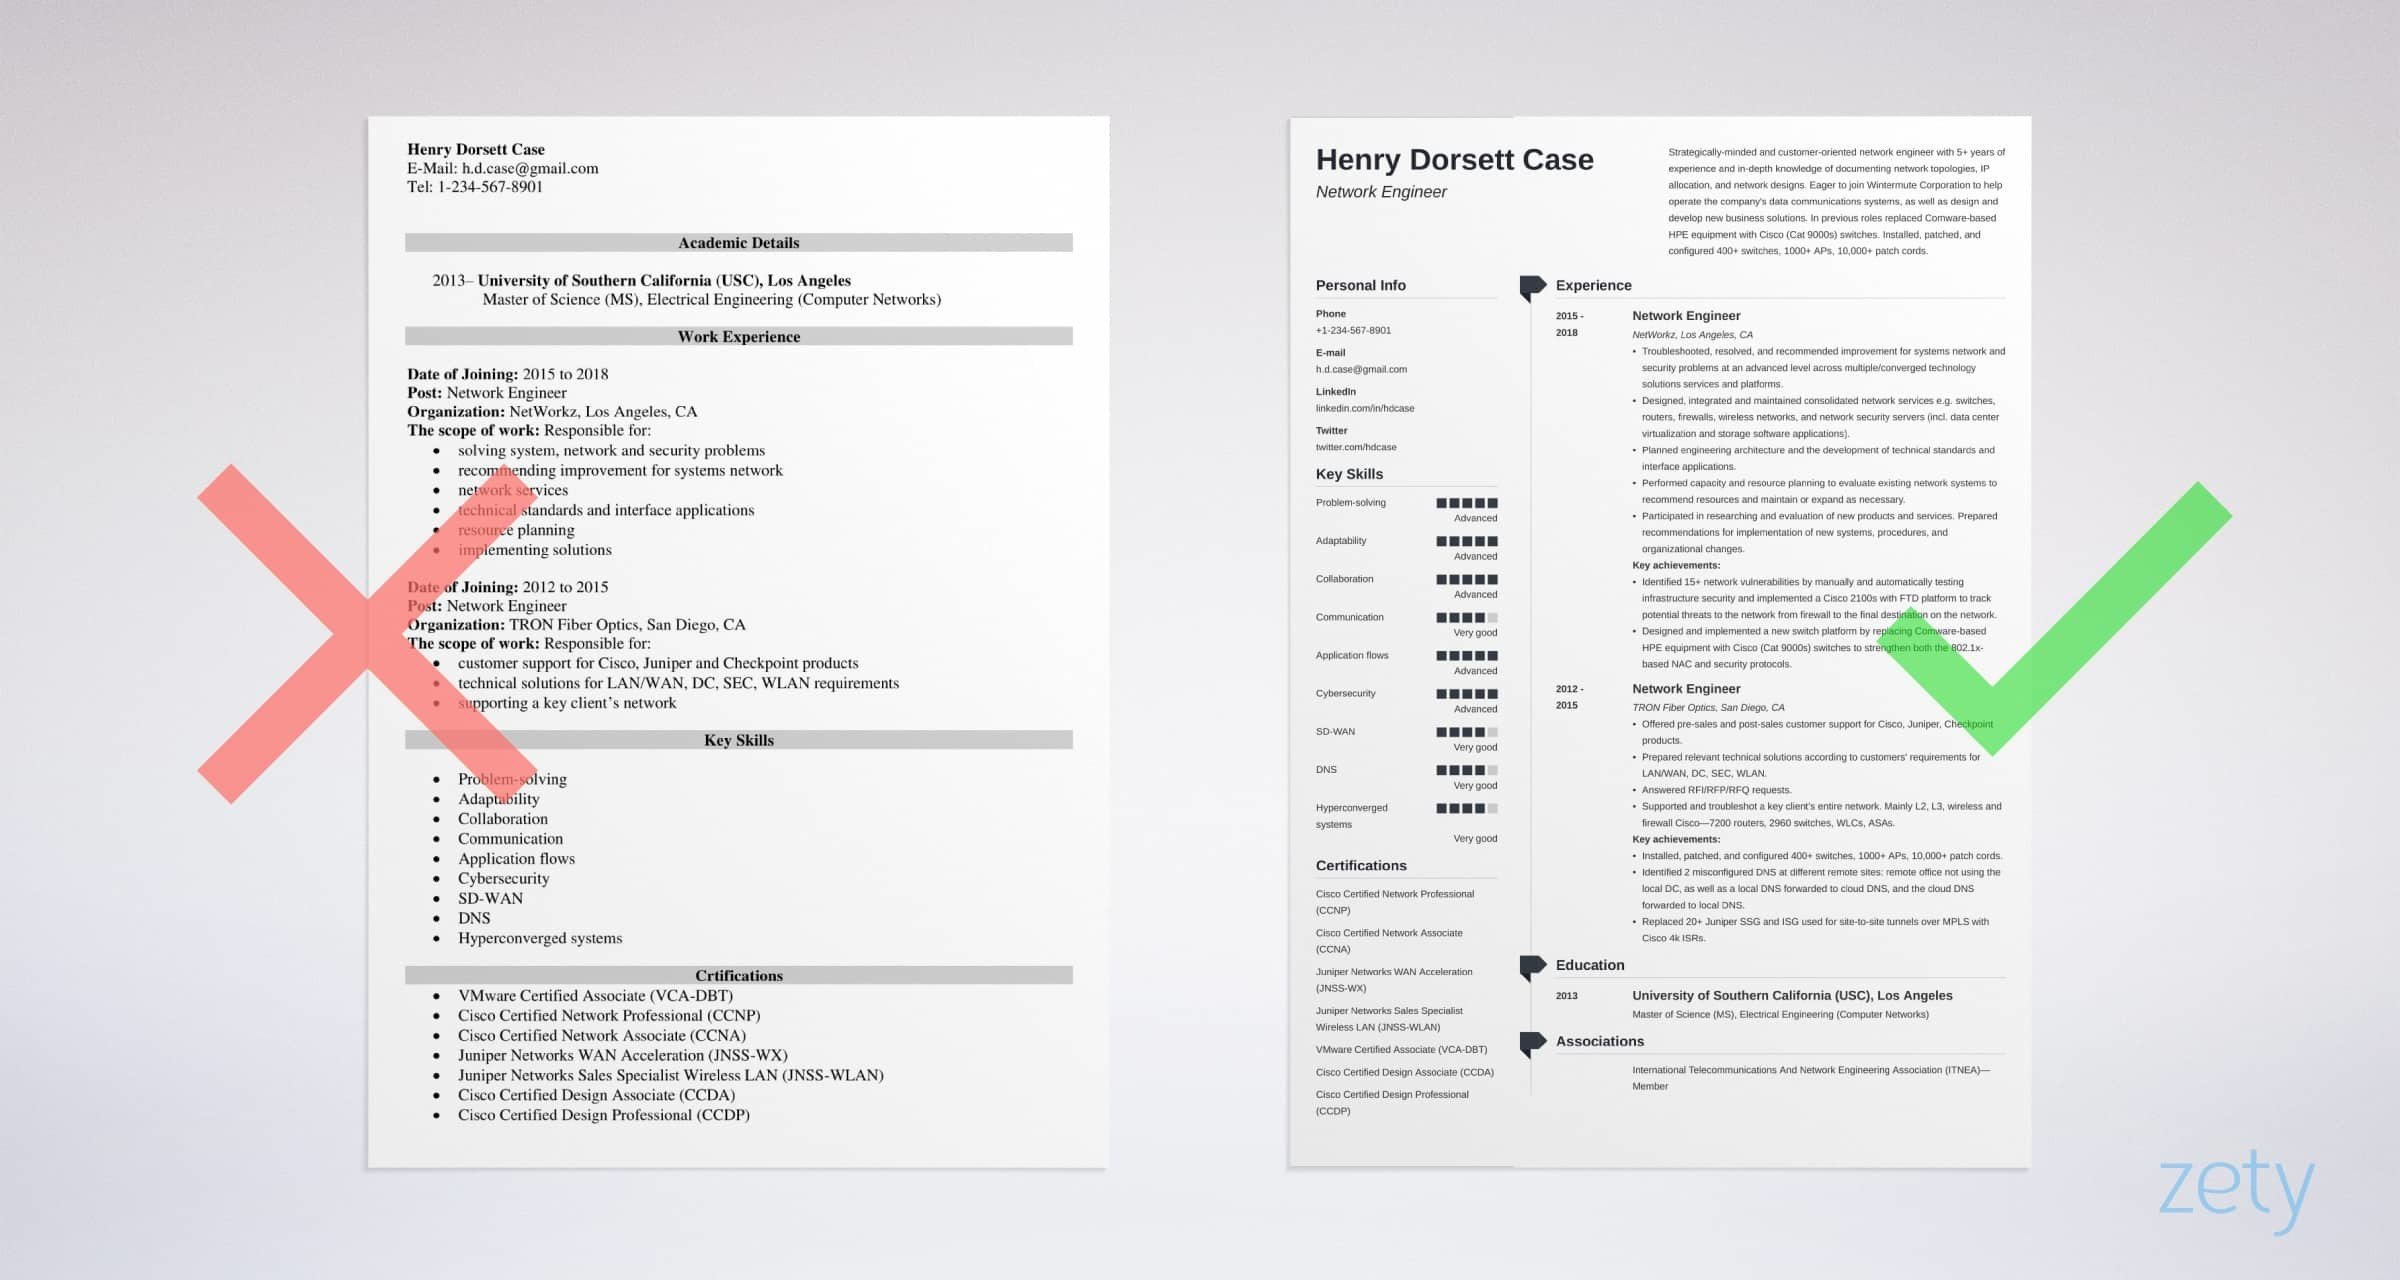 Network Engineer Resume: Sample and Writing Guide [20+ Examples]